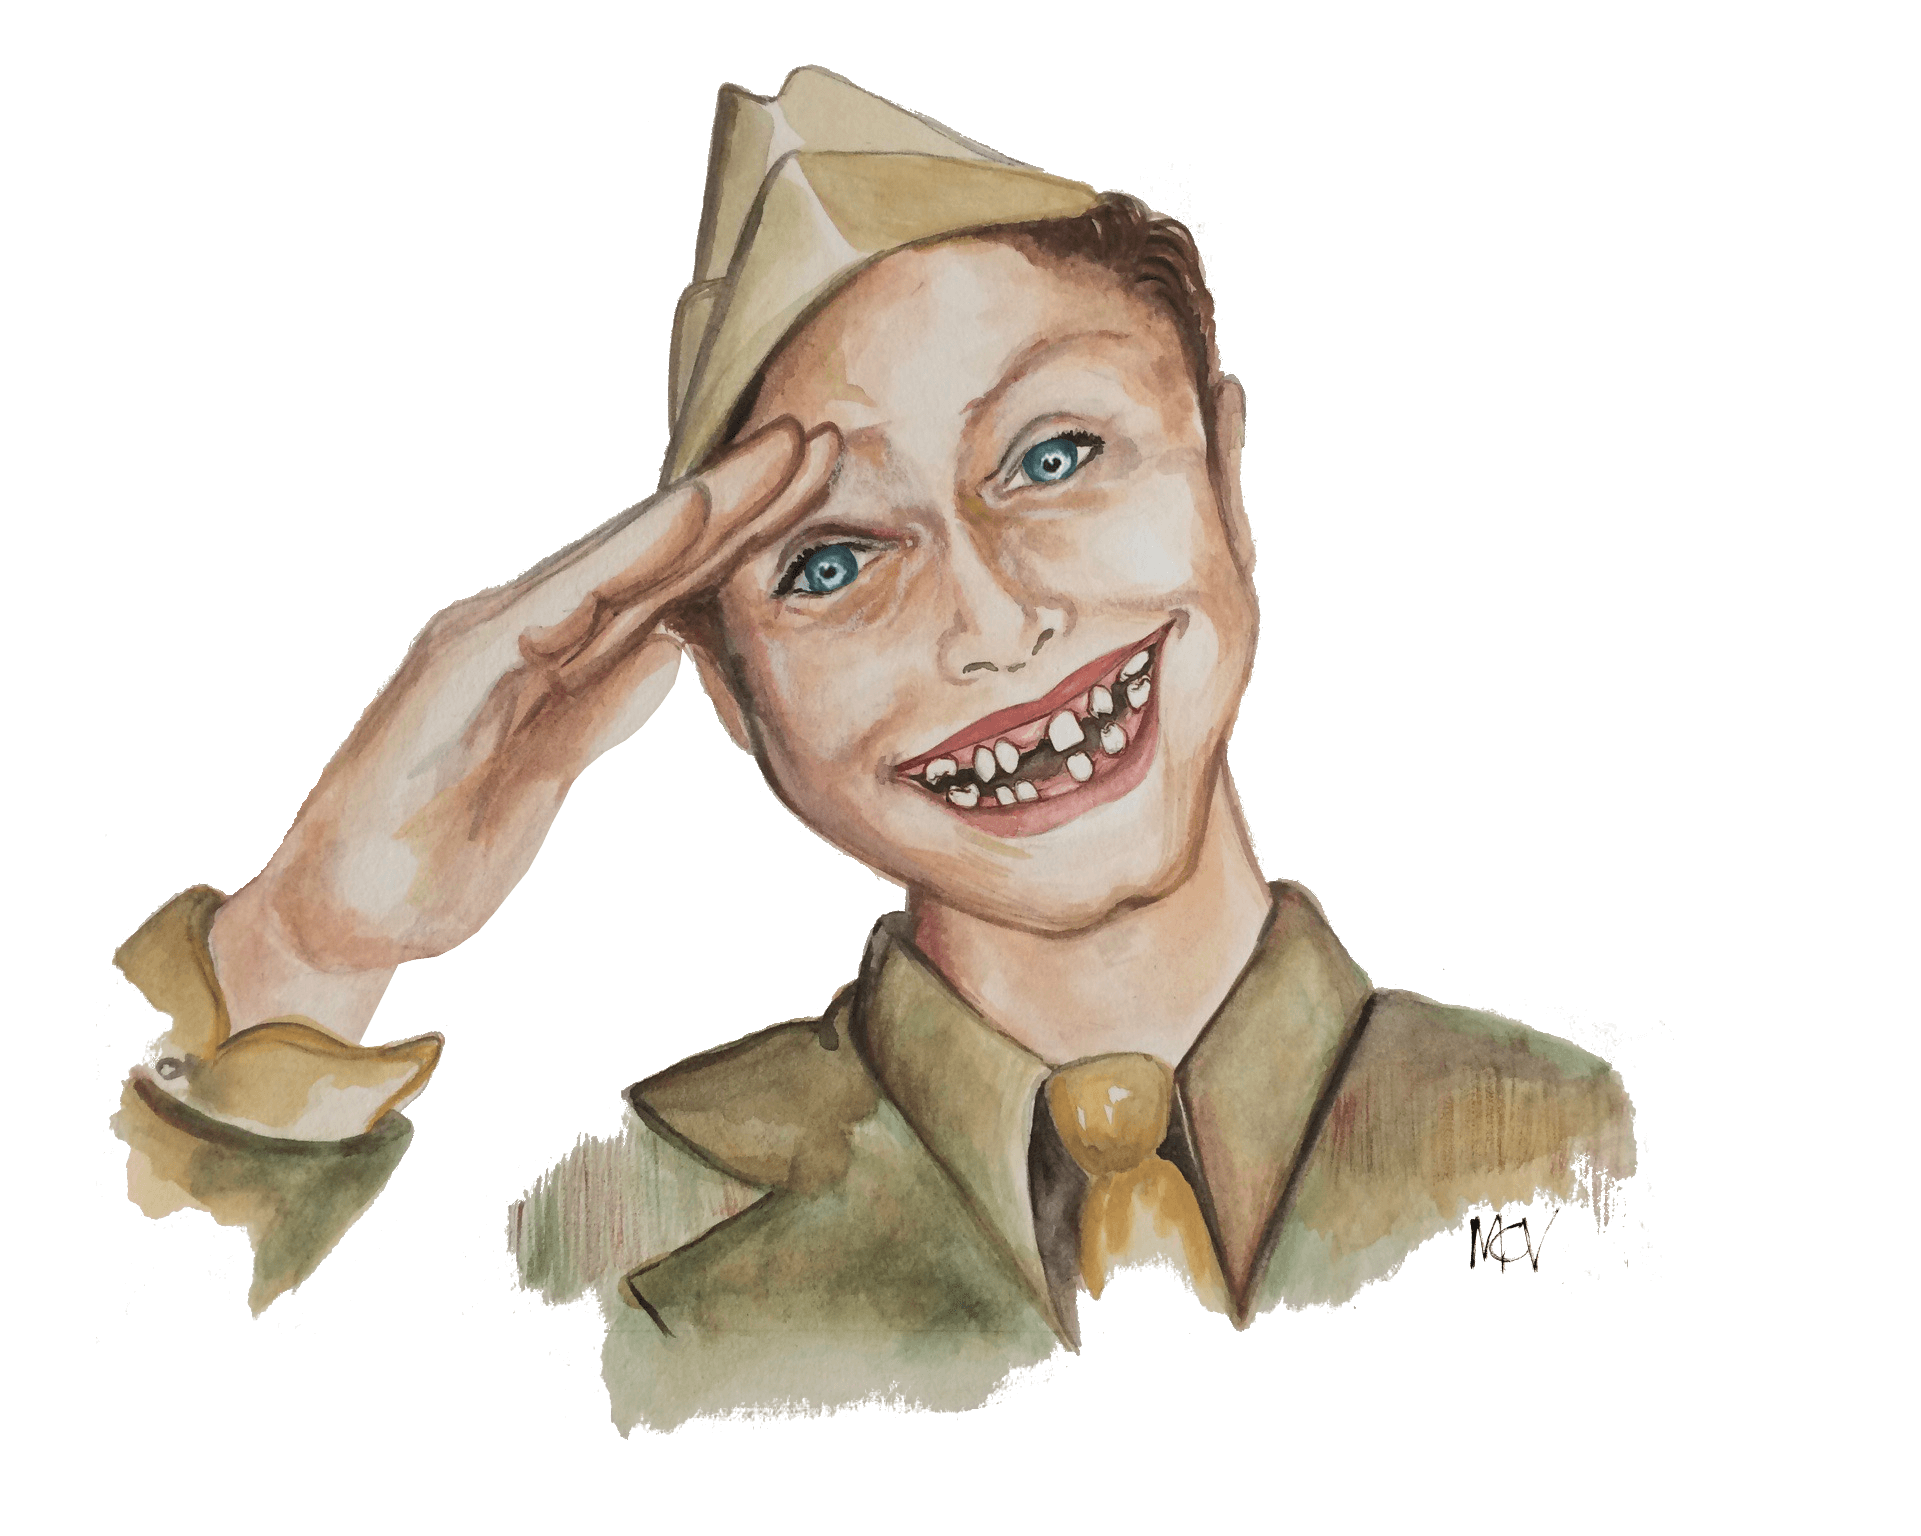 Illustration of dental health standard for service during World War 2, 6 pairs of teeth. Shows a big smile missing many teeth on a stereotypical 1940s happy guy with army hat.